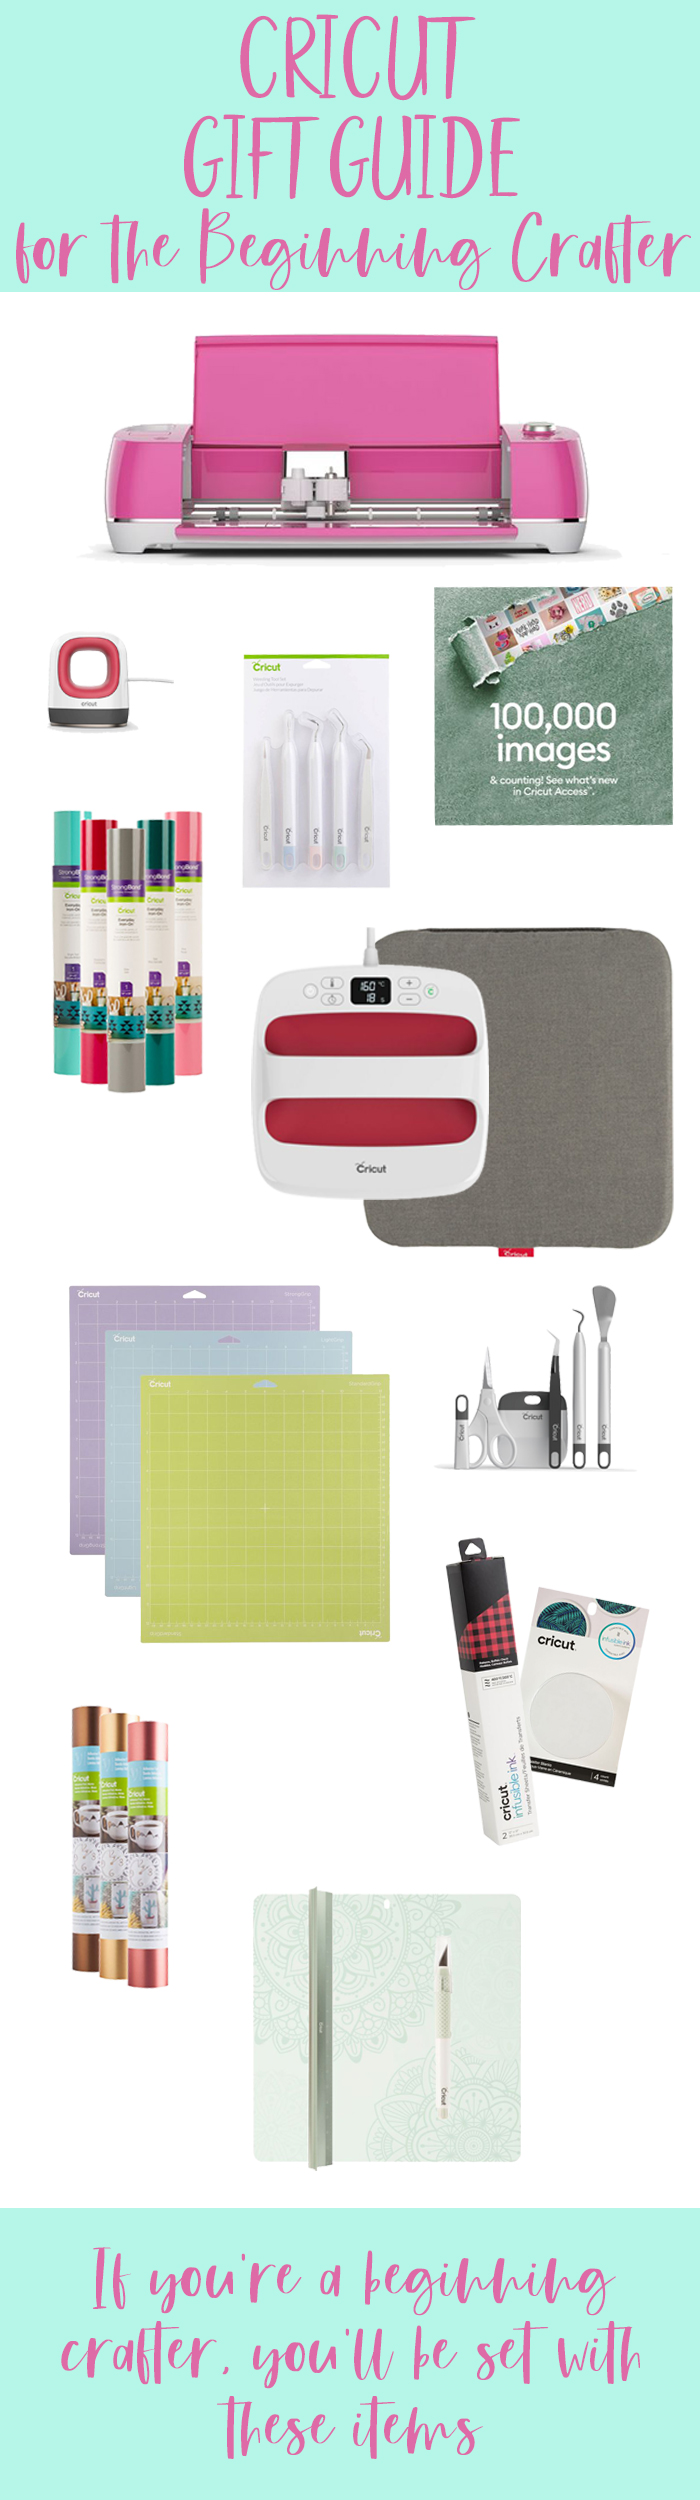 If you're new to crafting then this Cricut Gift Guide for the Beginning Crafter is for you! You'll be creating beautiful projects in no time!